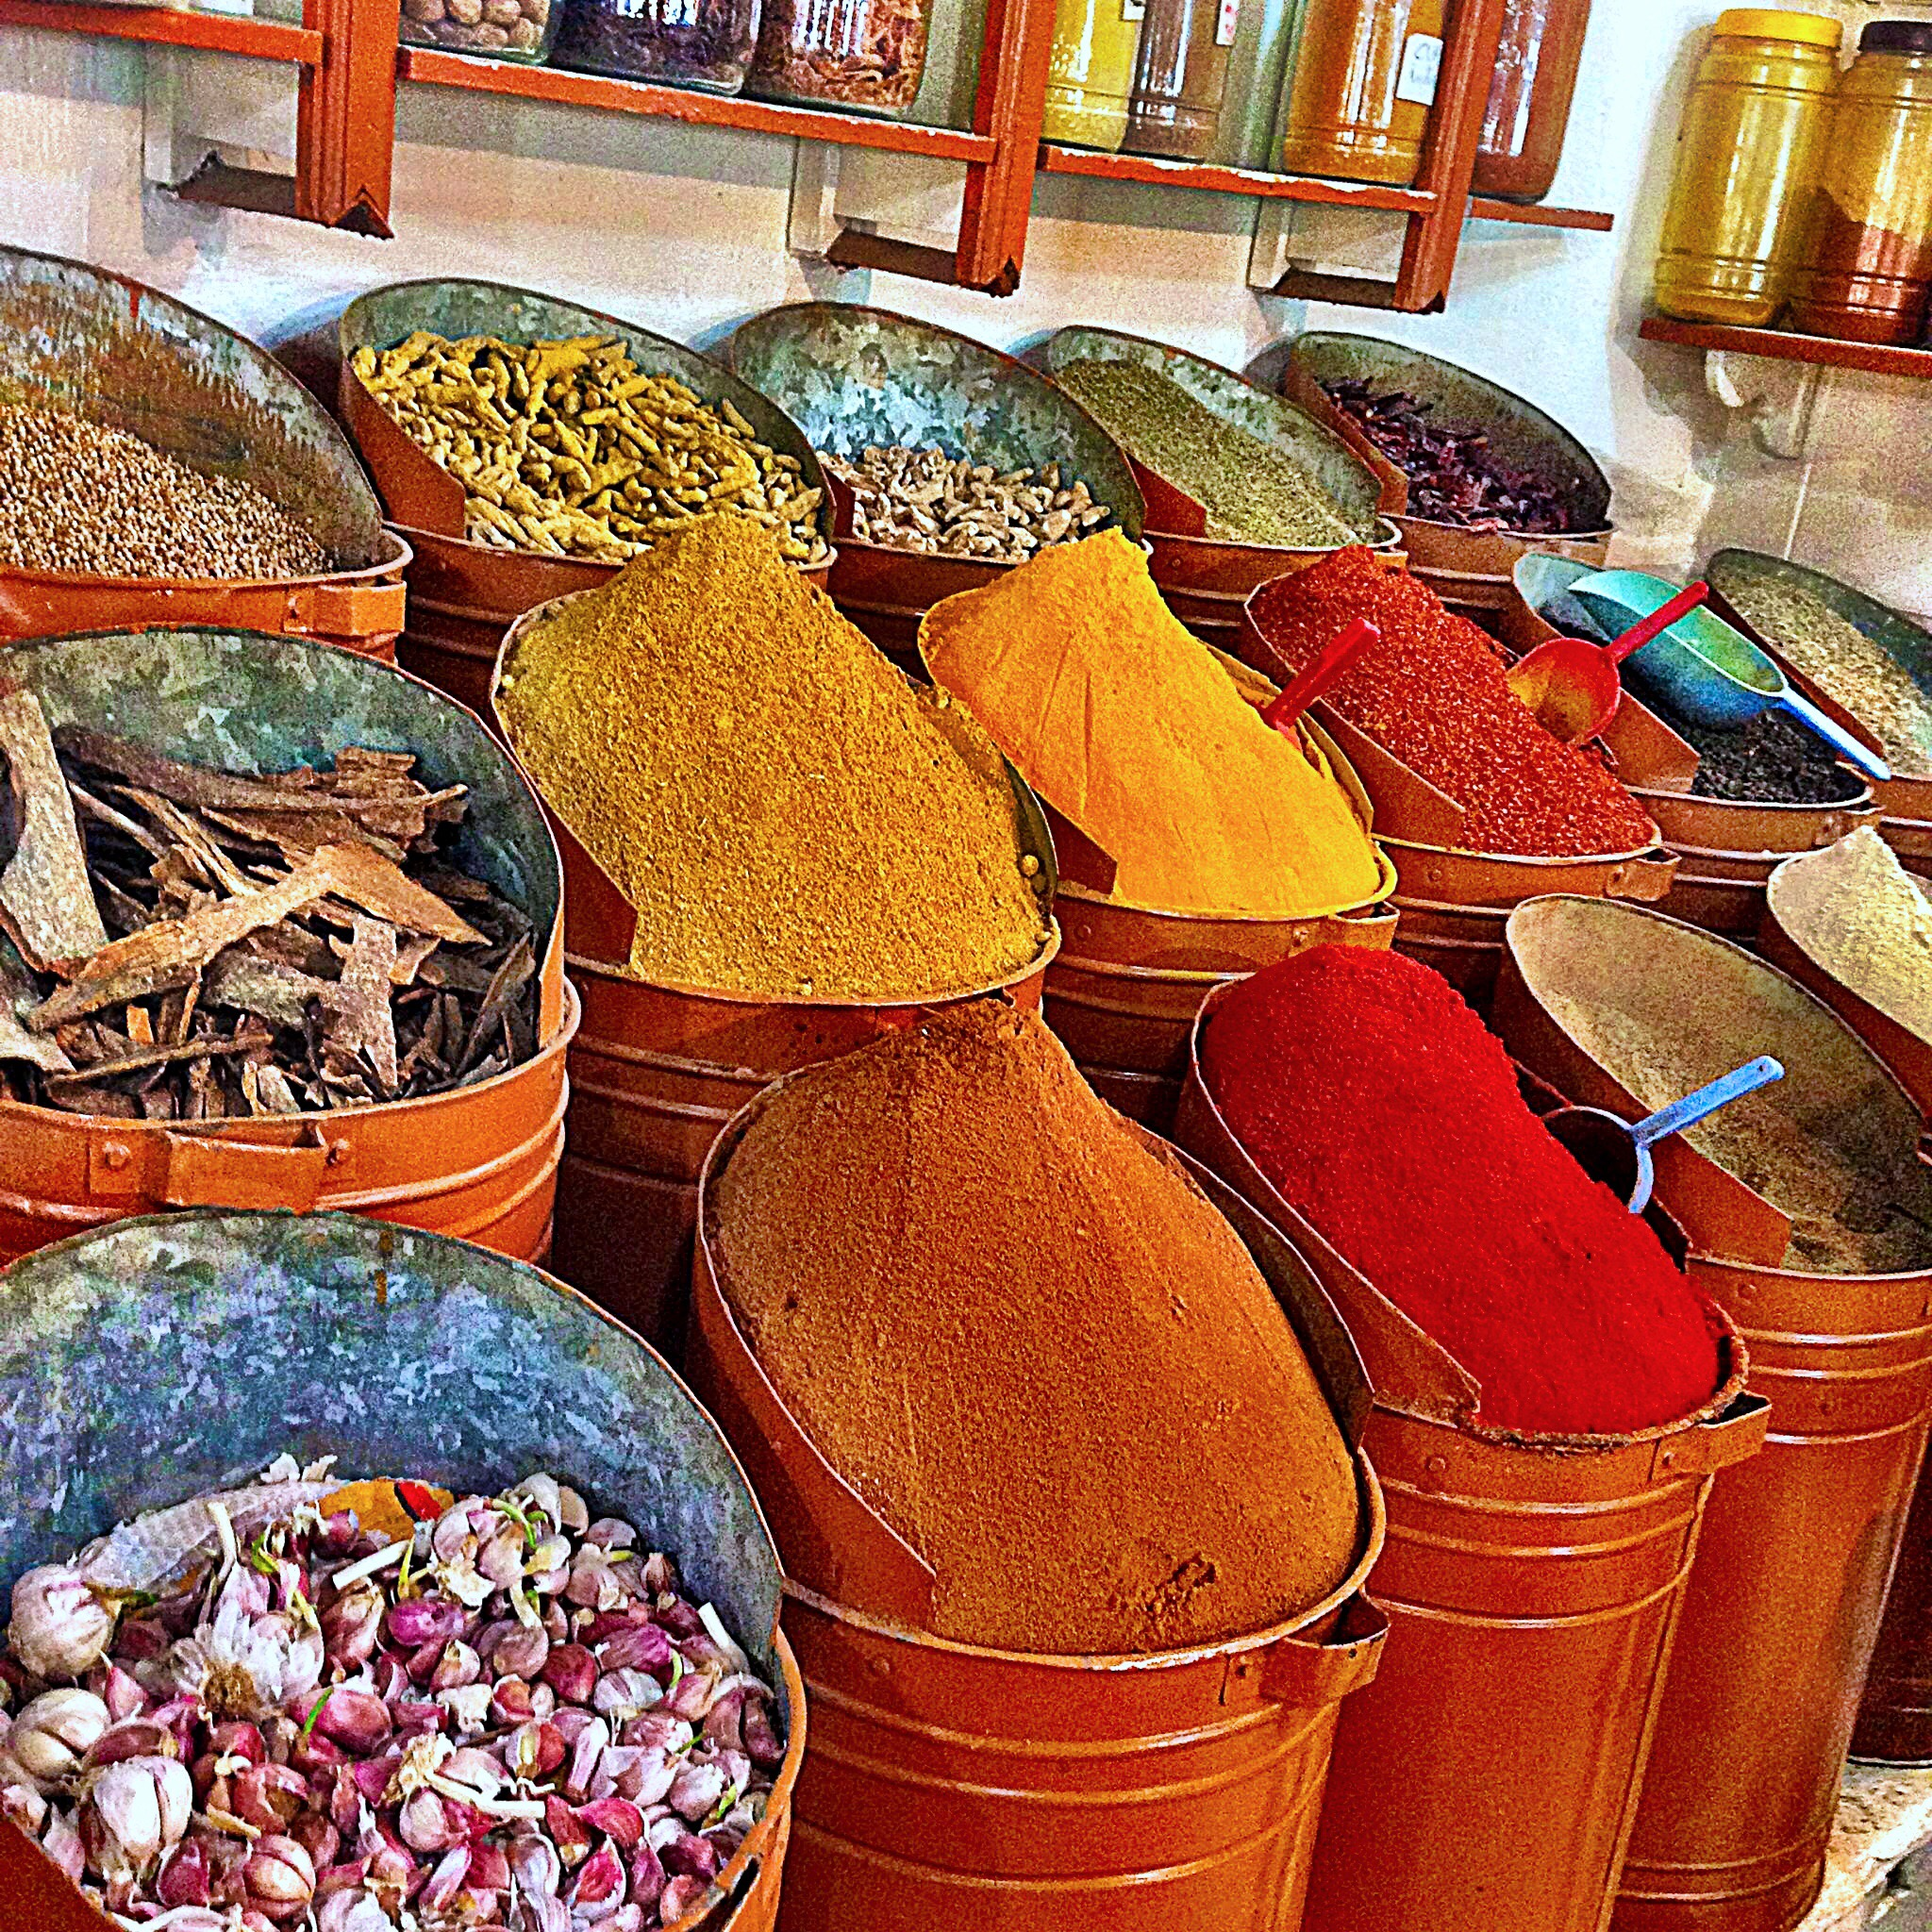 A Pinch of This - Morocco Travels - Spices